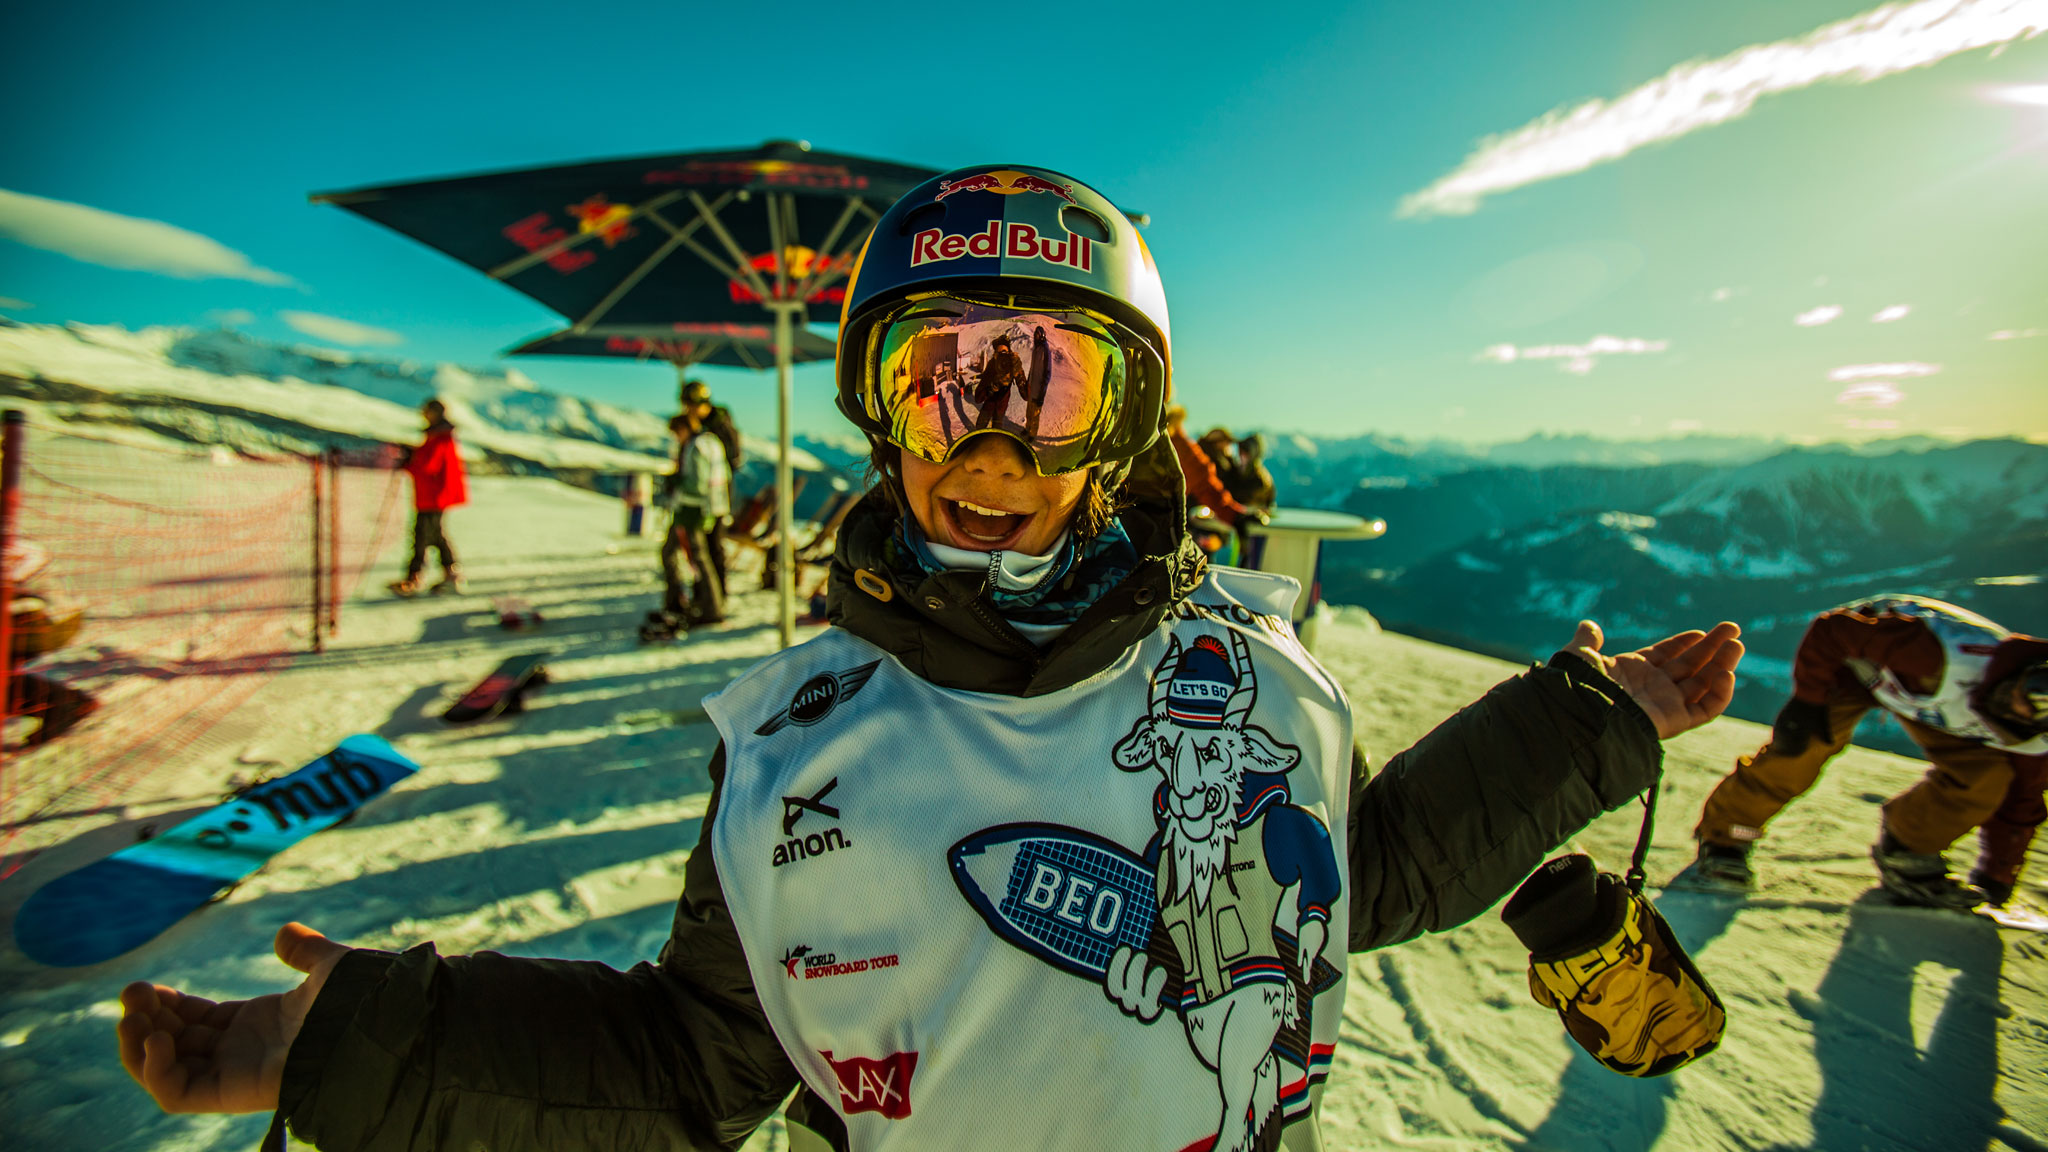 Meet Toby Miller ... snowboarding's next superstar? Photo courtesy of Josh Schwartz.